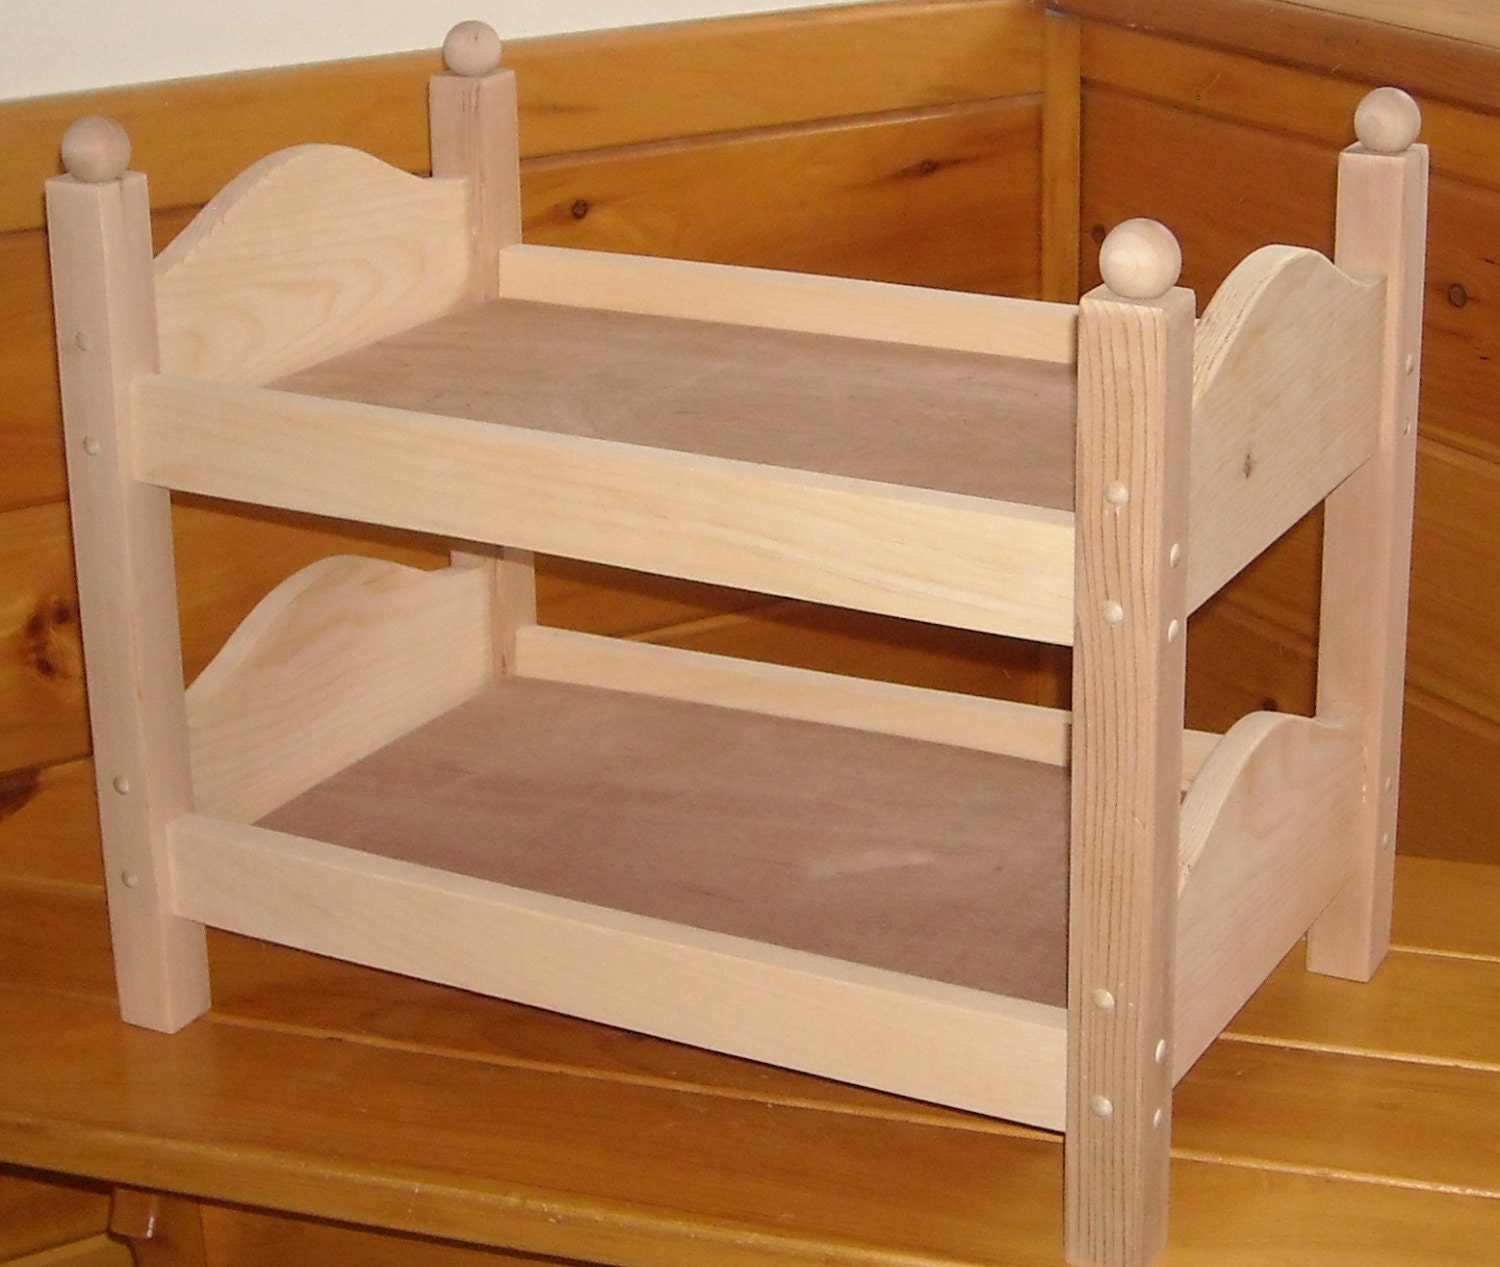 Bunk Bed Dolls: Handmade Bunk Bed For 18 Inch Doll